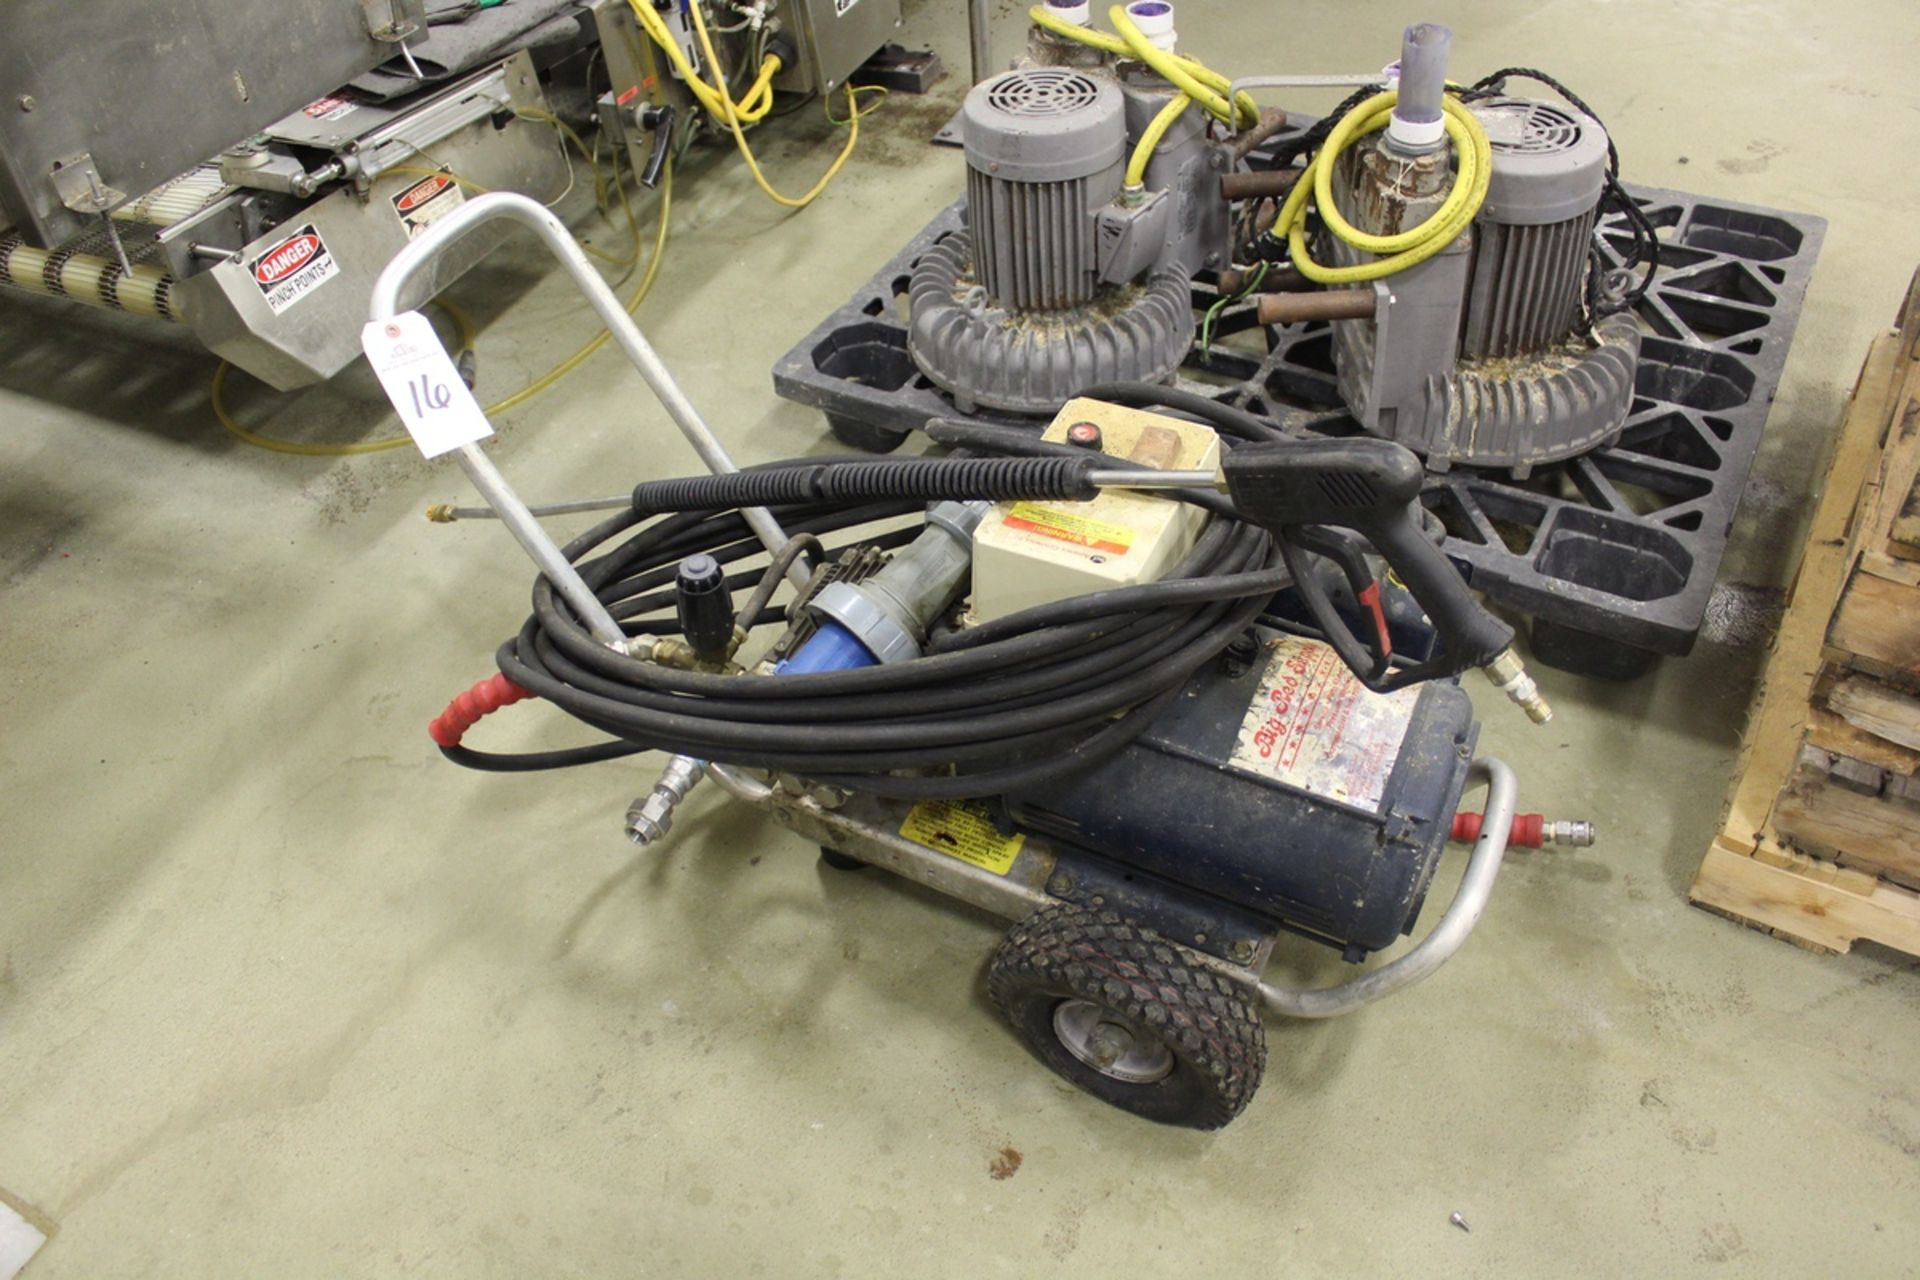 Lot 16 - Pressure Pro E-Series Pressure Washer Cart | Rig Fee: $25